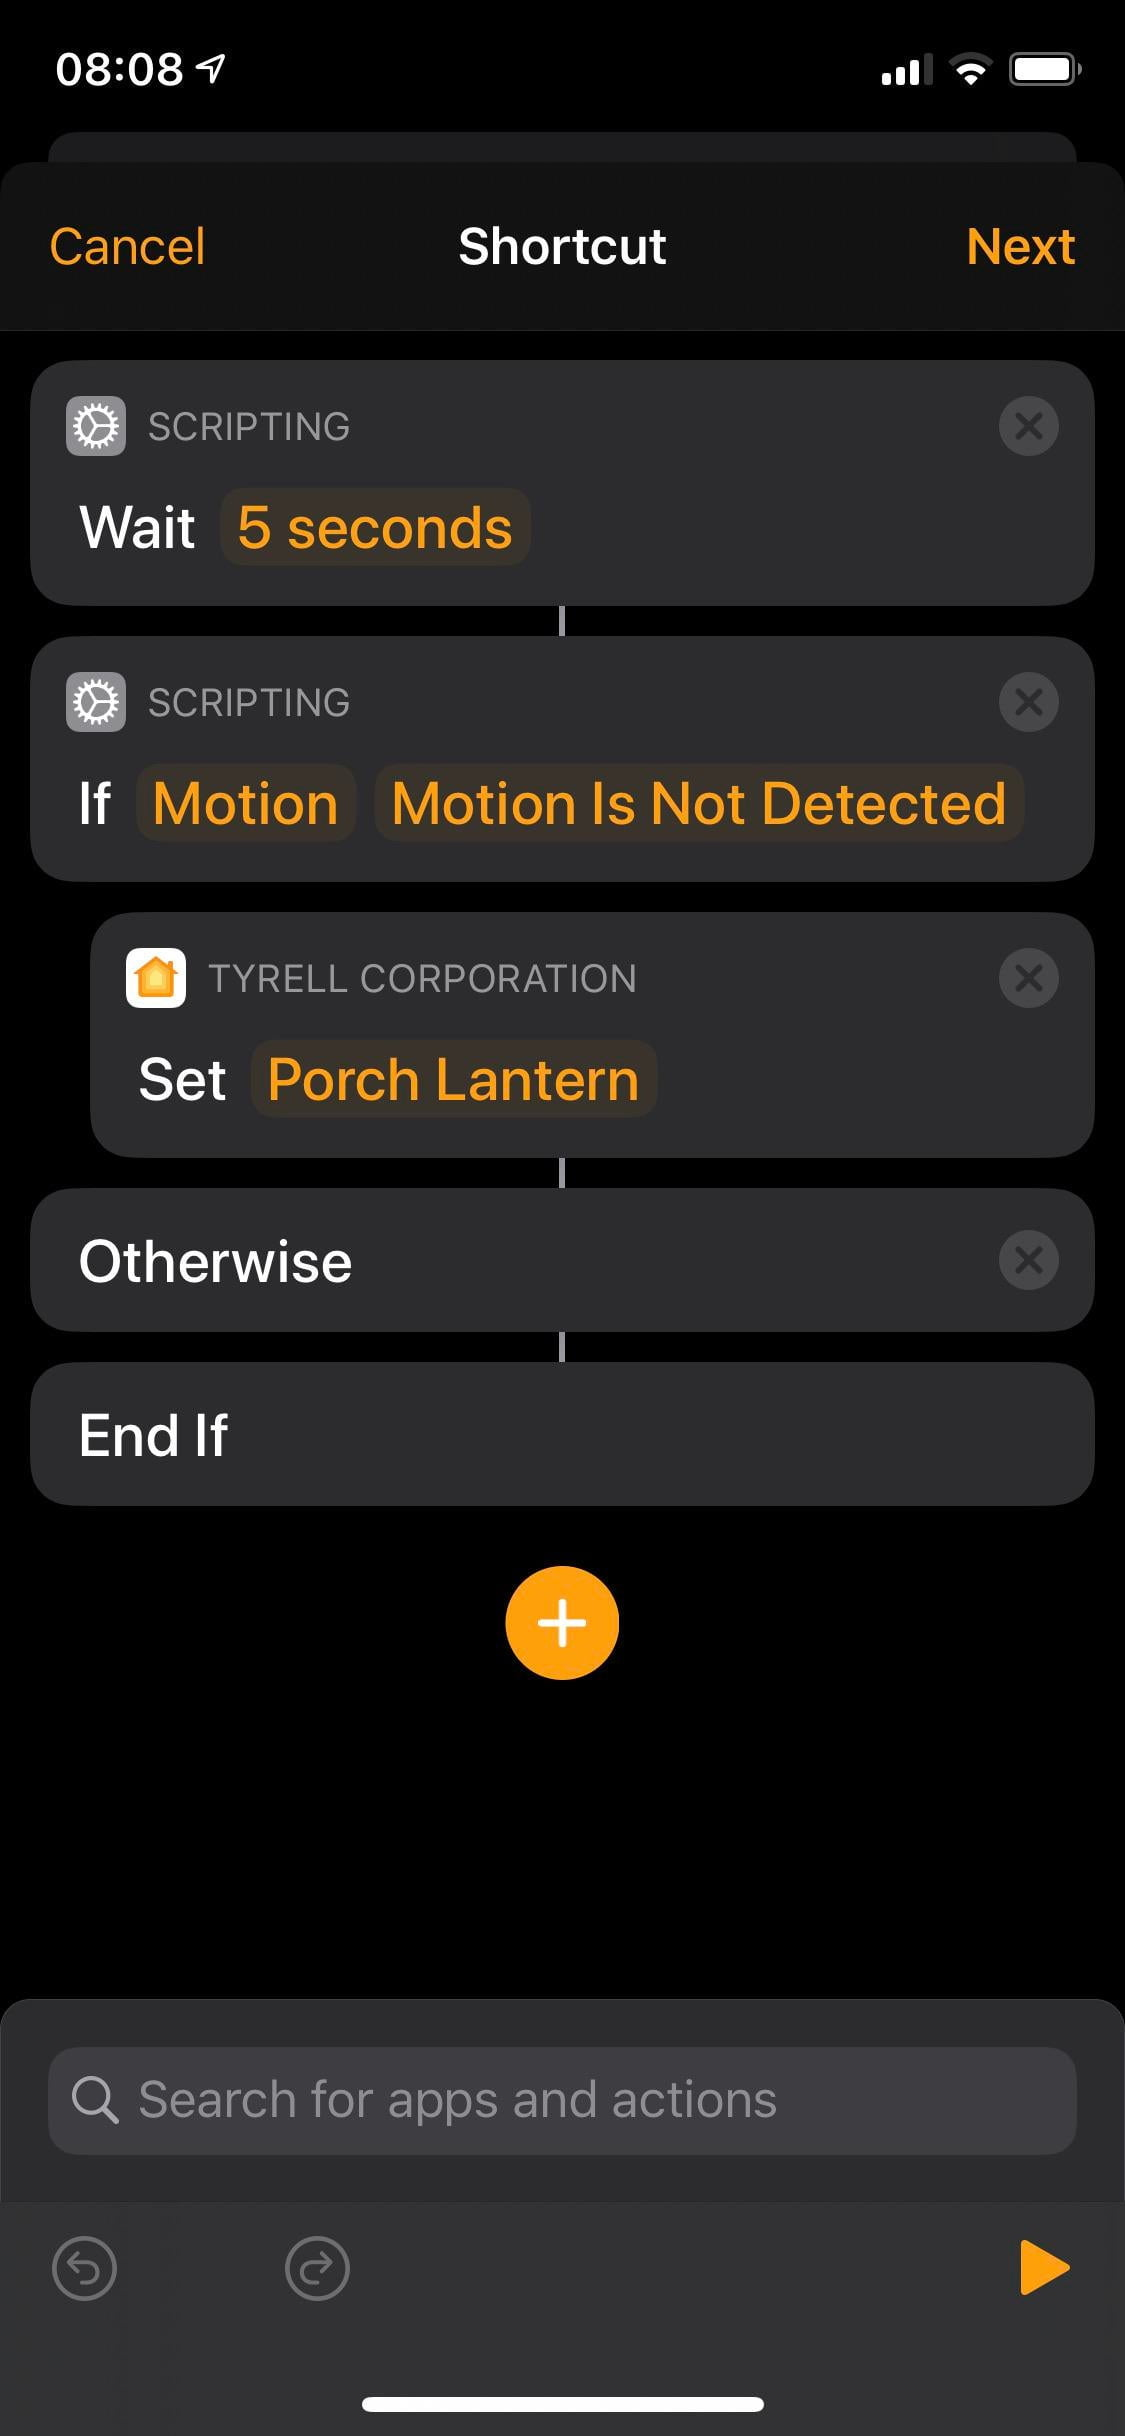 How to turn off the lights when no movement is detected (a much simpler solution).